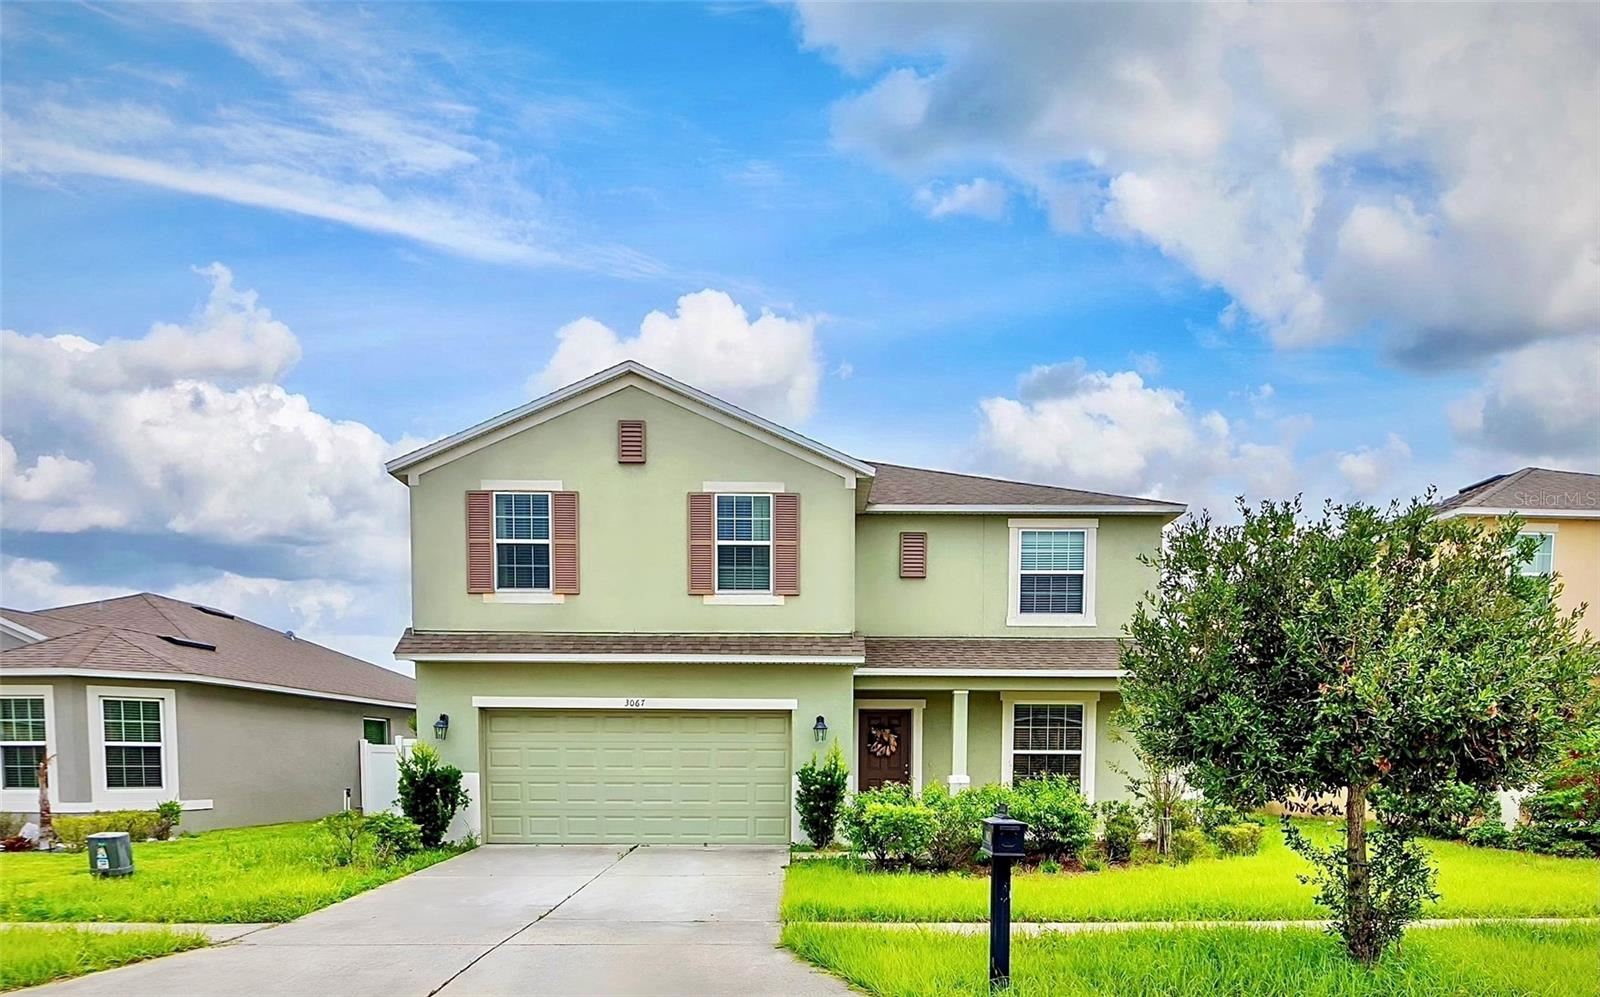 3067 PATTERSON GROVES DRIVE, Haines City, FL 33844 - #: S5055641